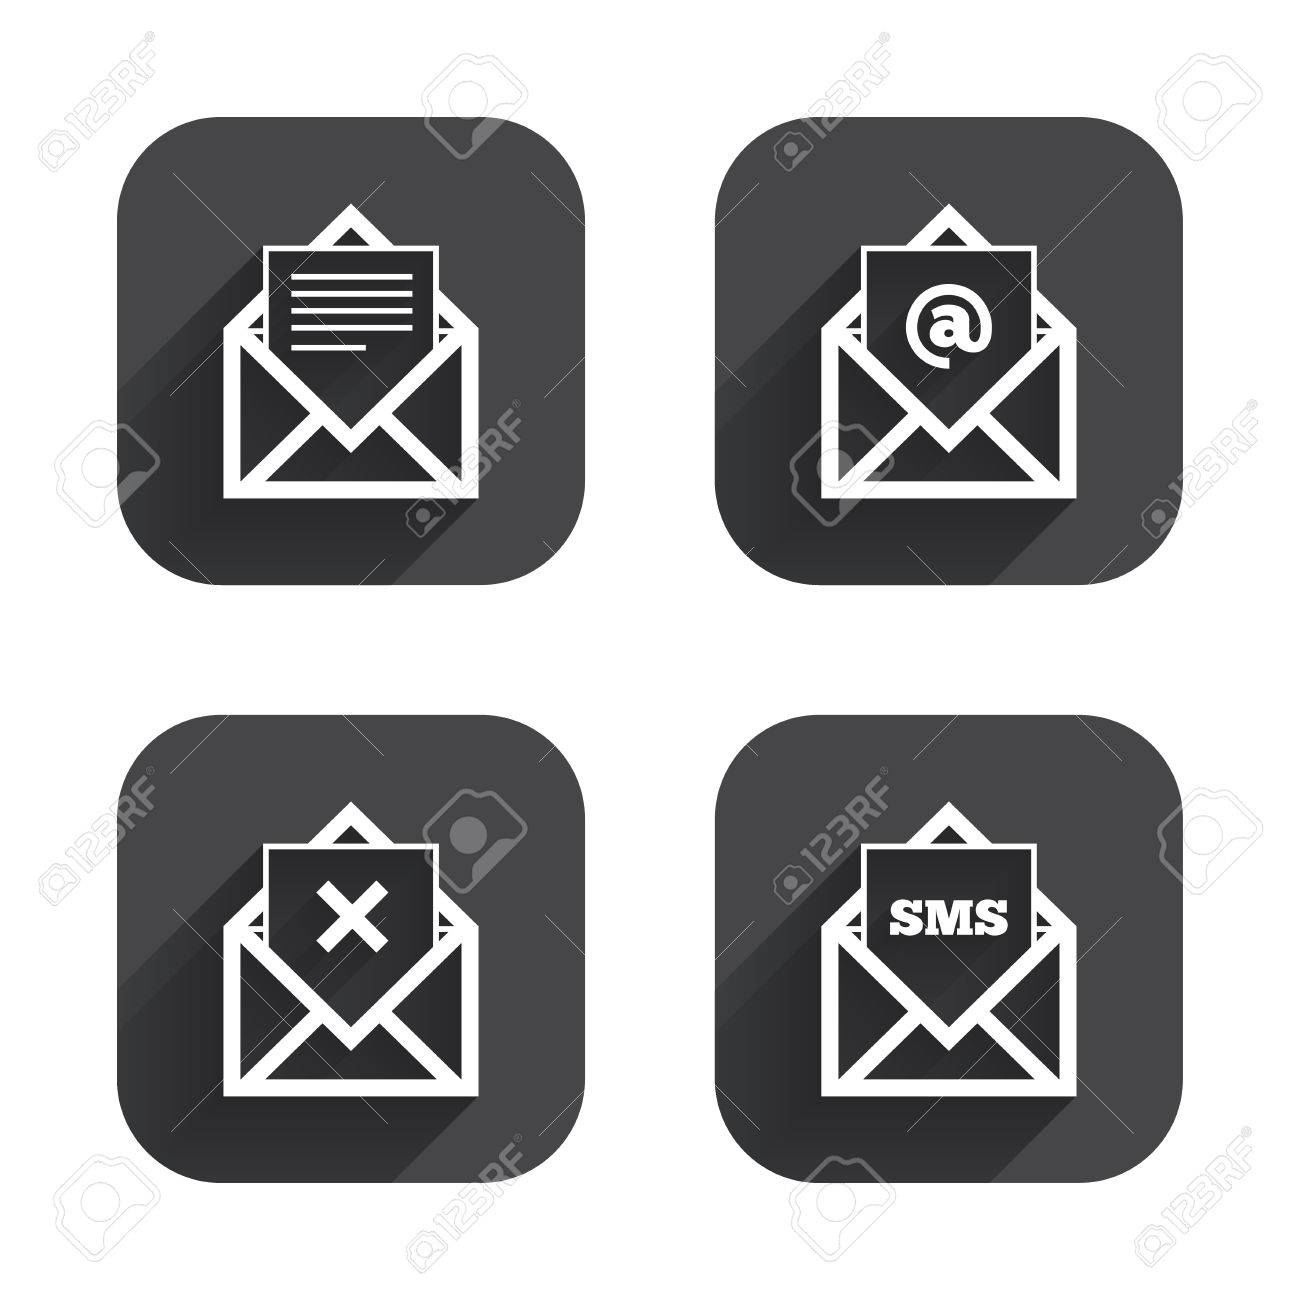 Mail envelope icons message document symbols post office letter message document symbols post office letter signs delete mail and biocorpaavc Images